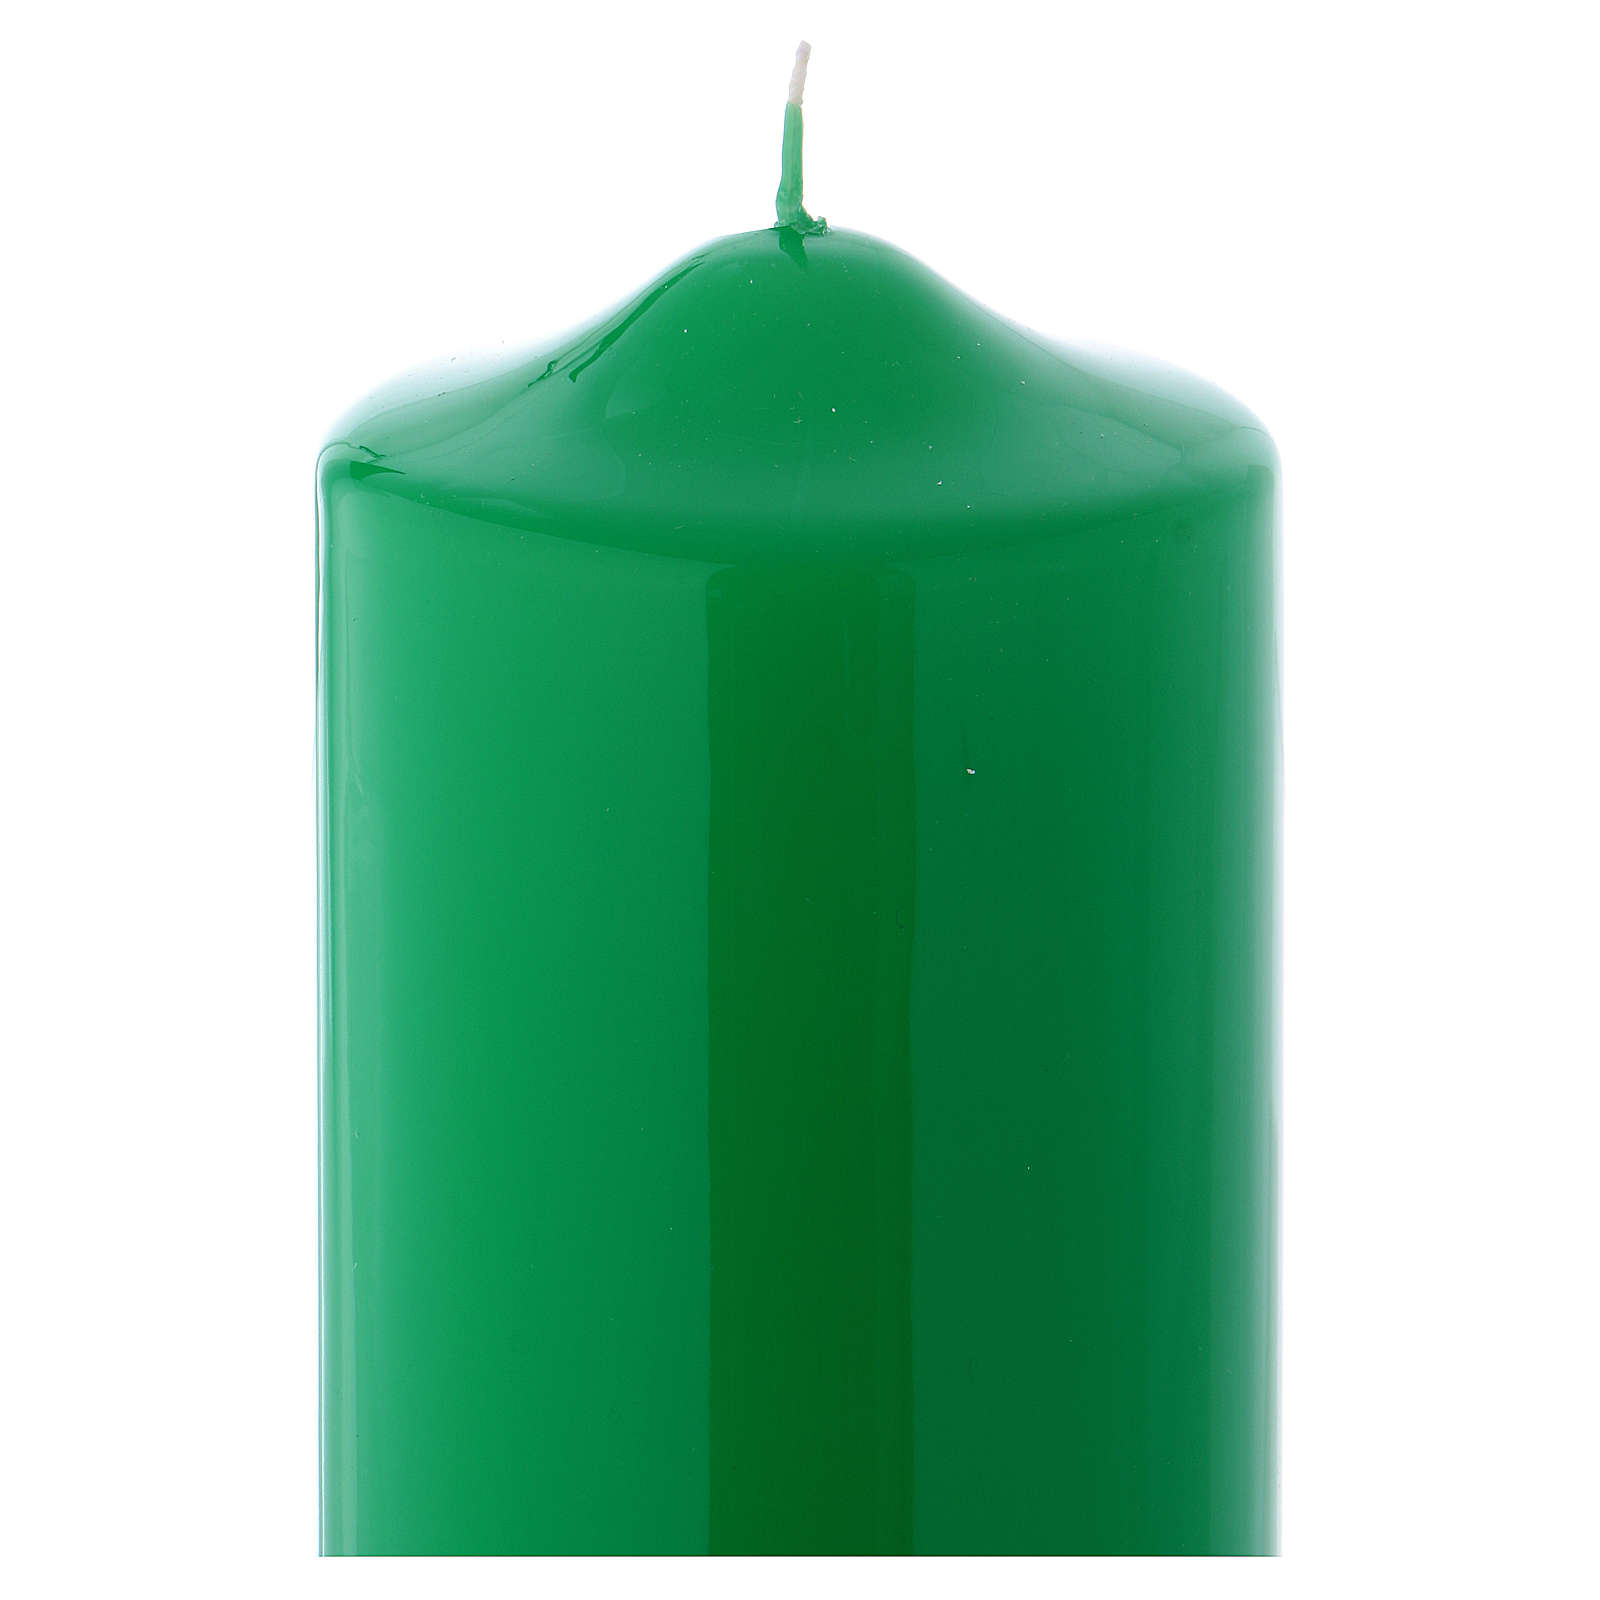 Green altar candle 24x8 cm, Ceralacca collection 3